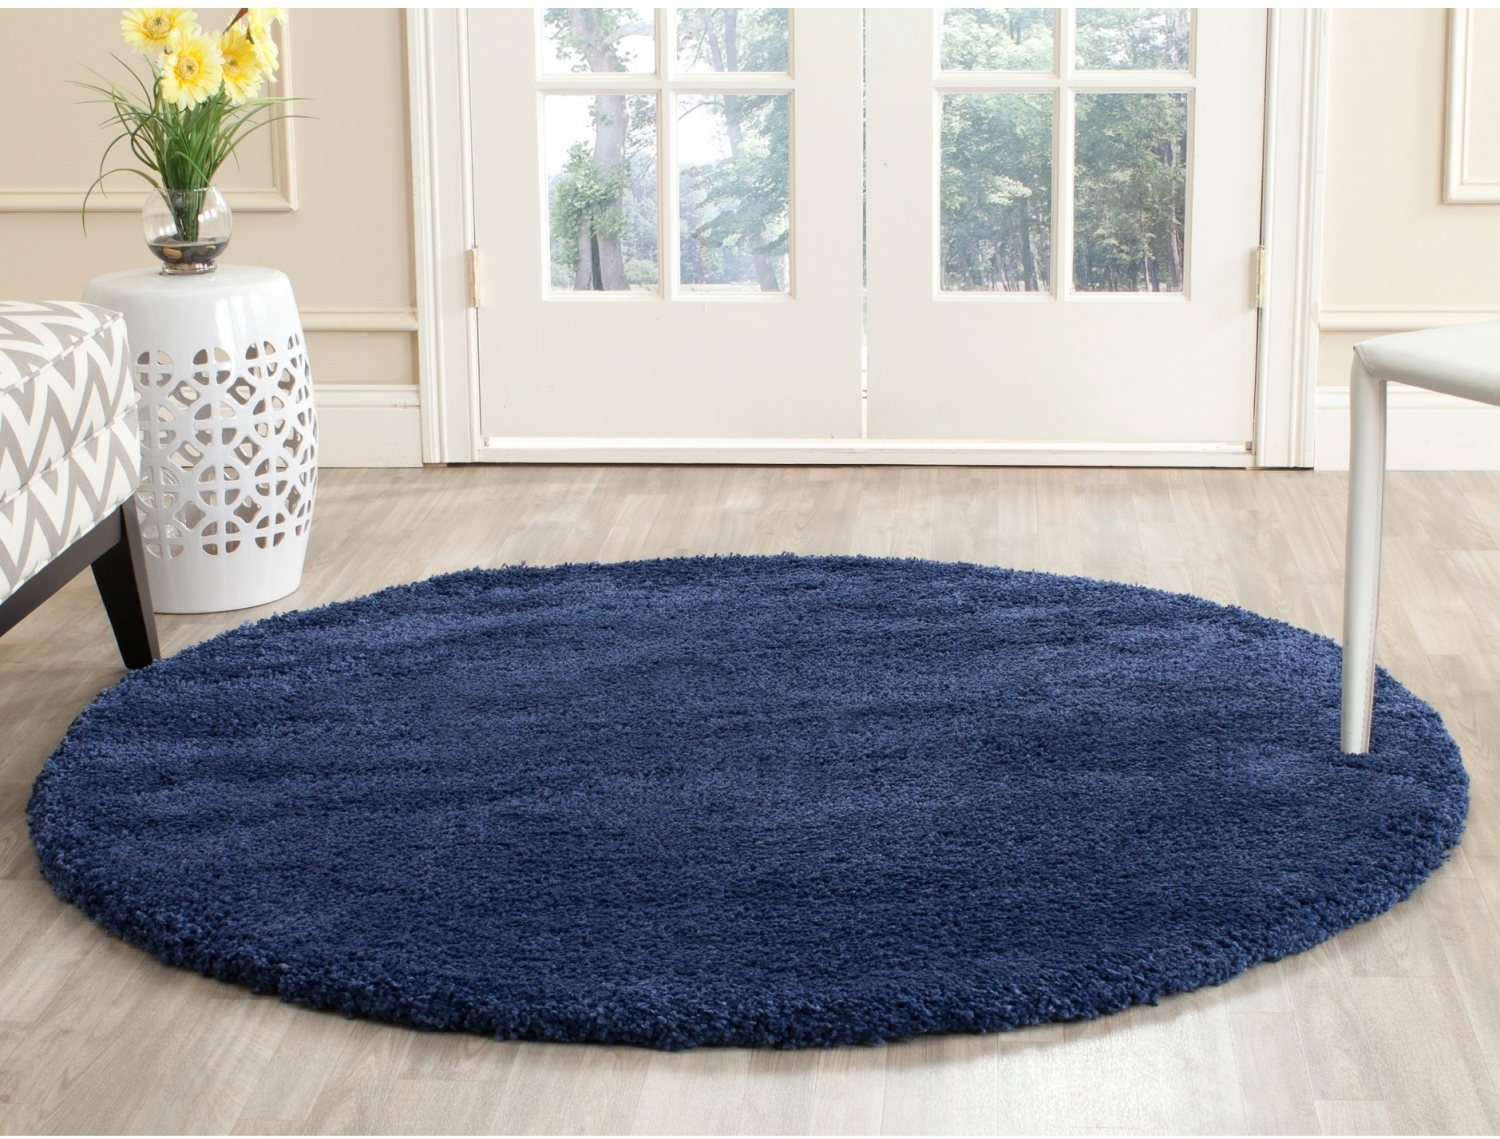 Details About Indoor Modern Contemporary Safavieh Milan Shag Navy Blue Rug 3 X 3 Round